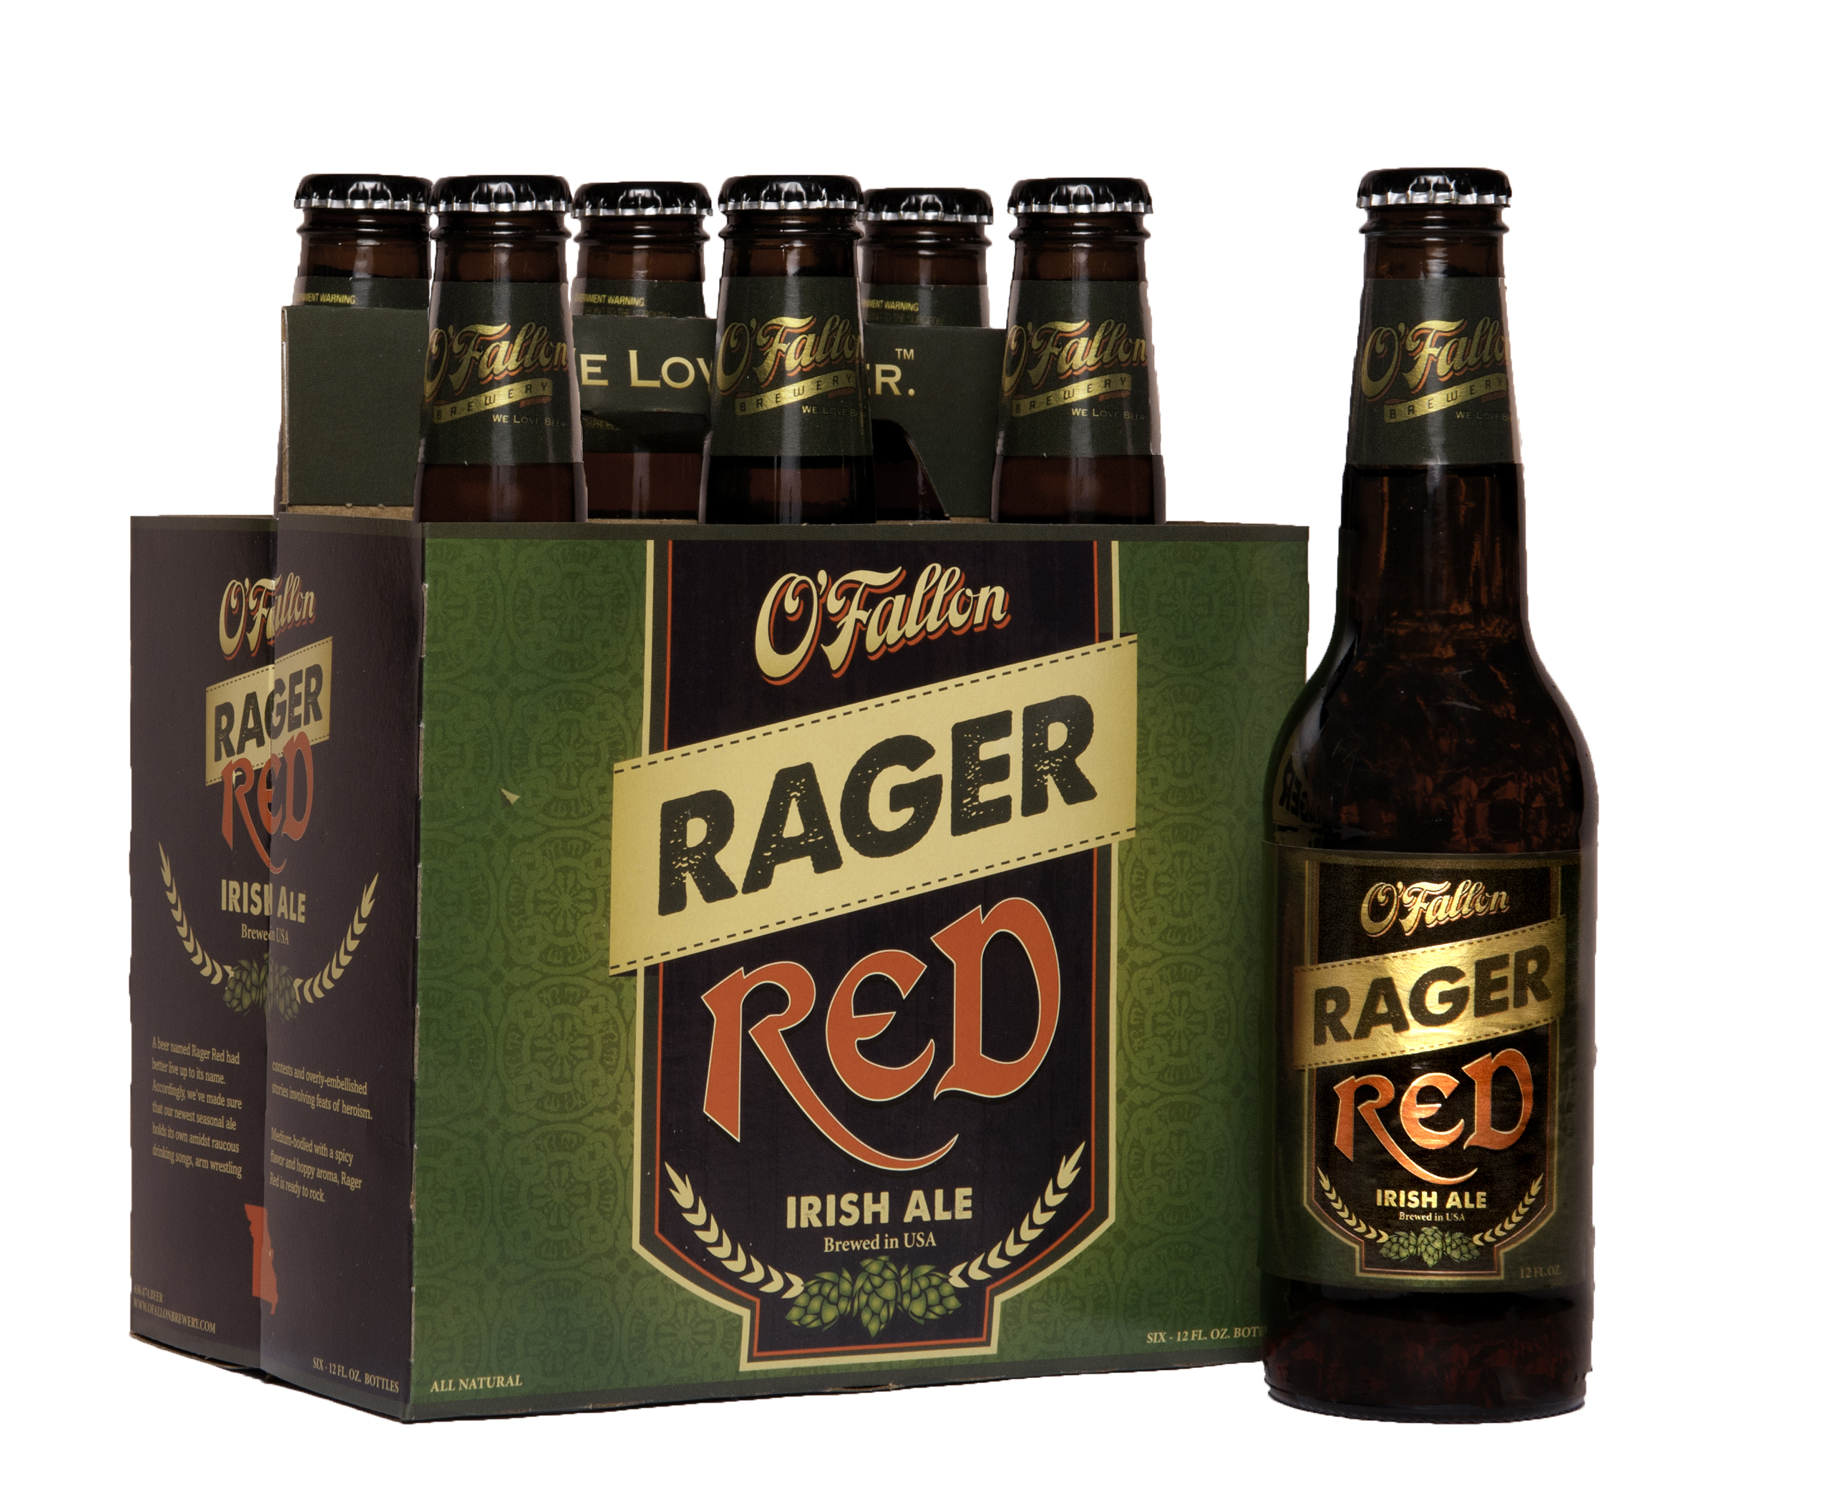 with the launch of its new spring seasonal beer  Rager Red Irish AleIrish Beer